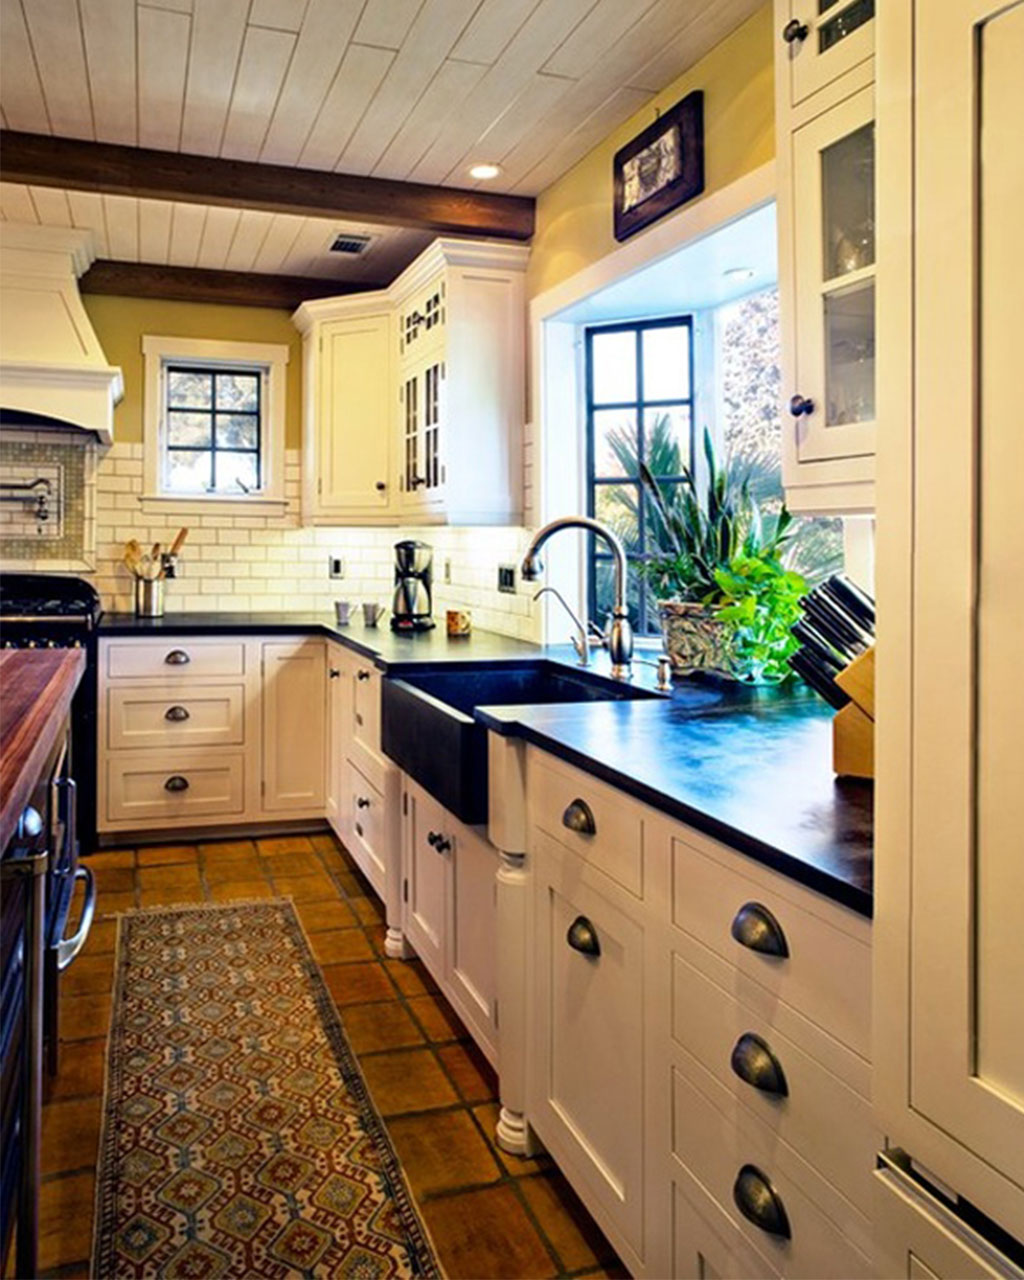 Designs Kitchen: 25 Cool Kitchen Design Trends 2015